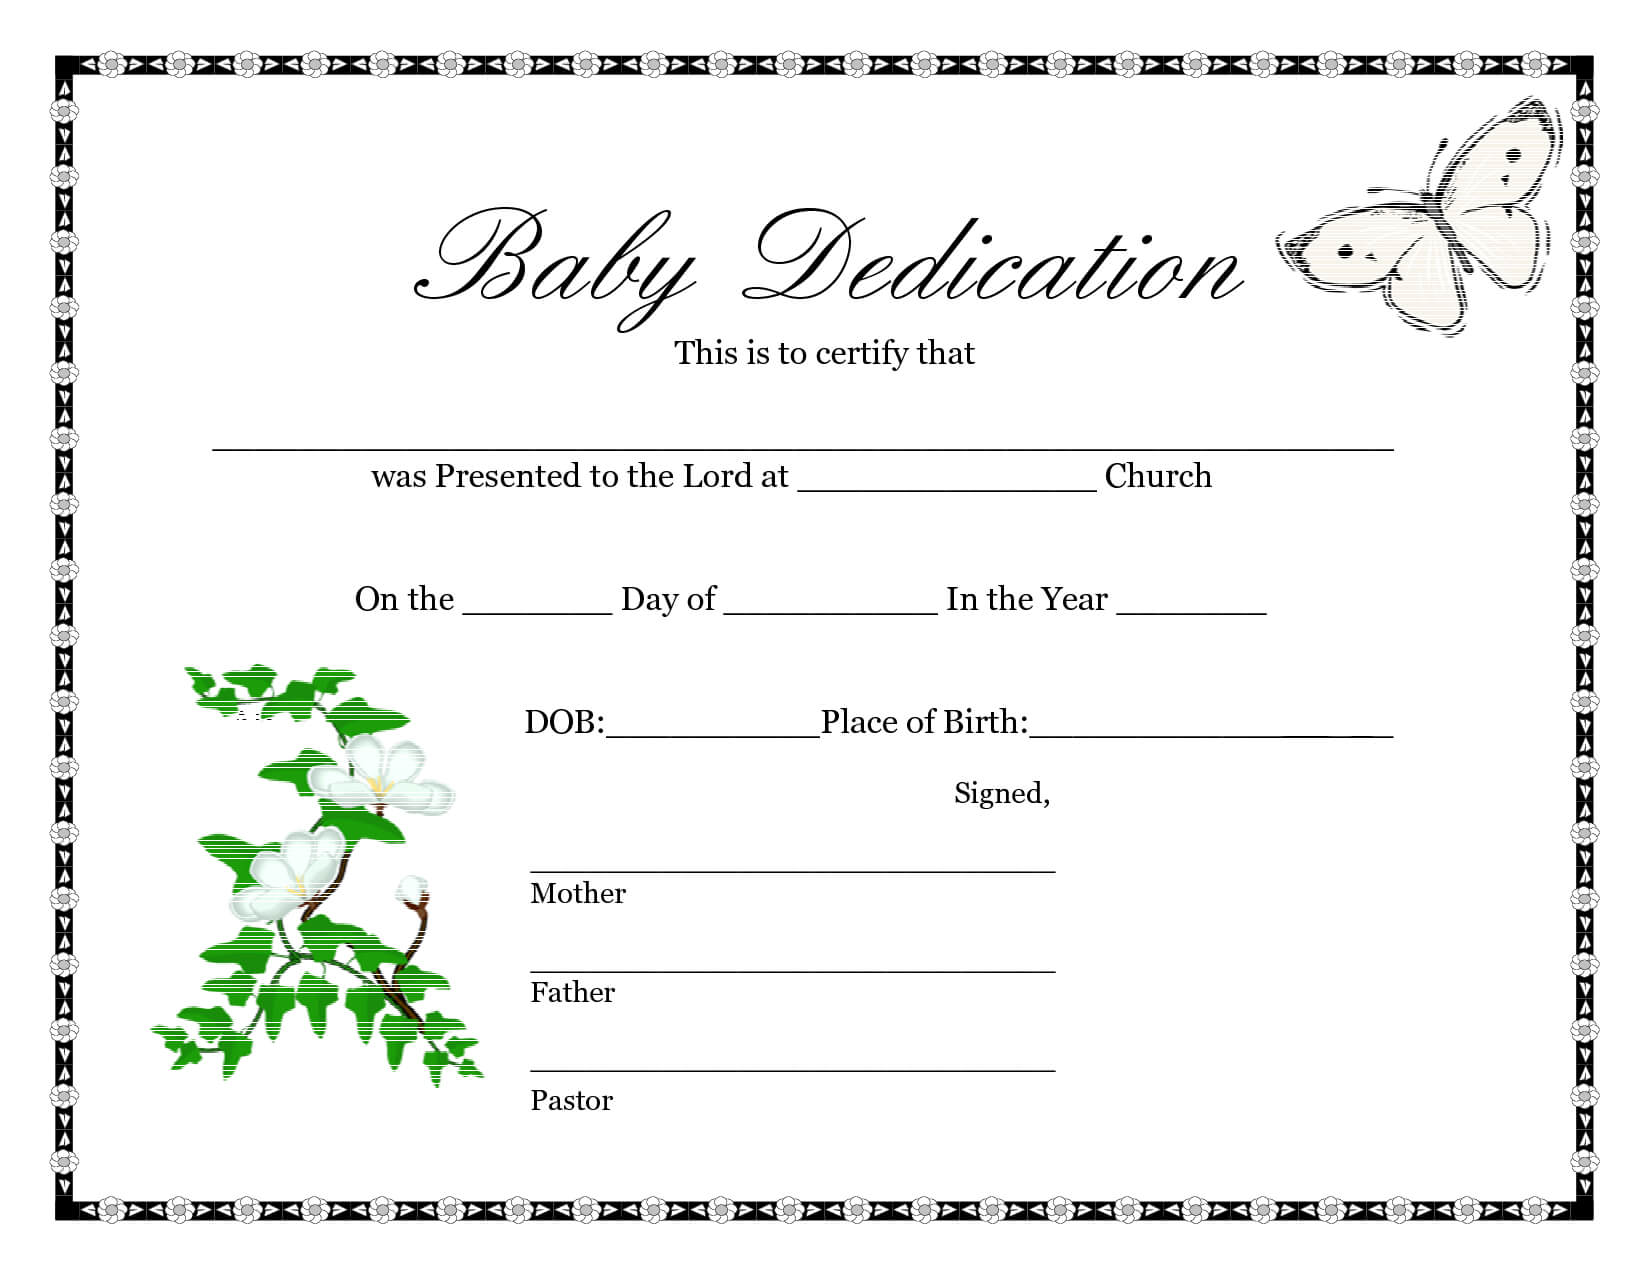 001 Birth Certificate Template Word Rare Ideas Free Inside Birth Certificate Templates For Word